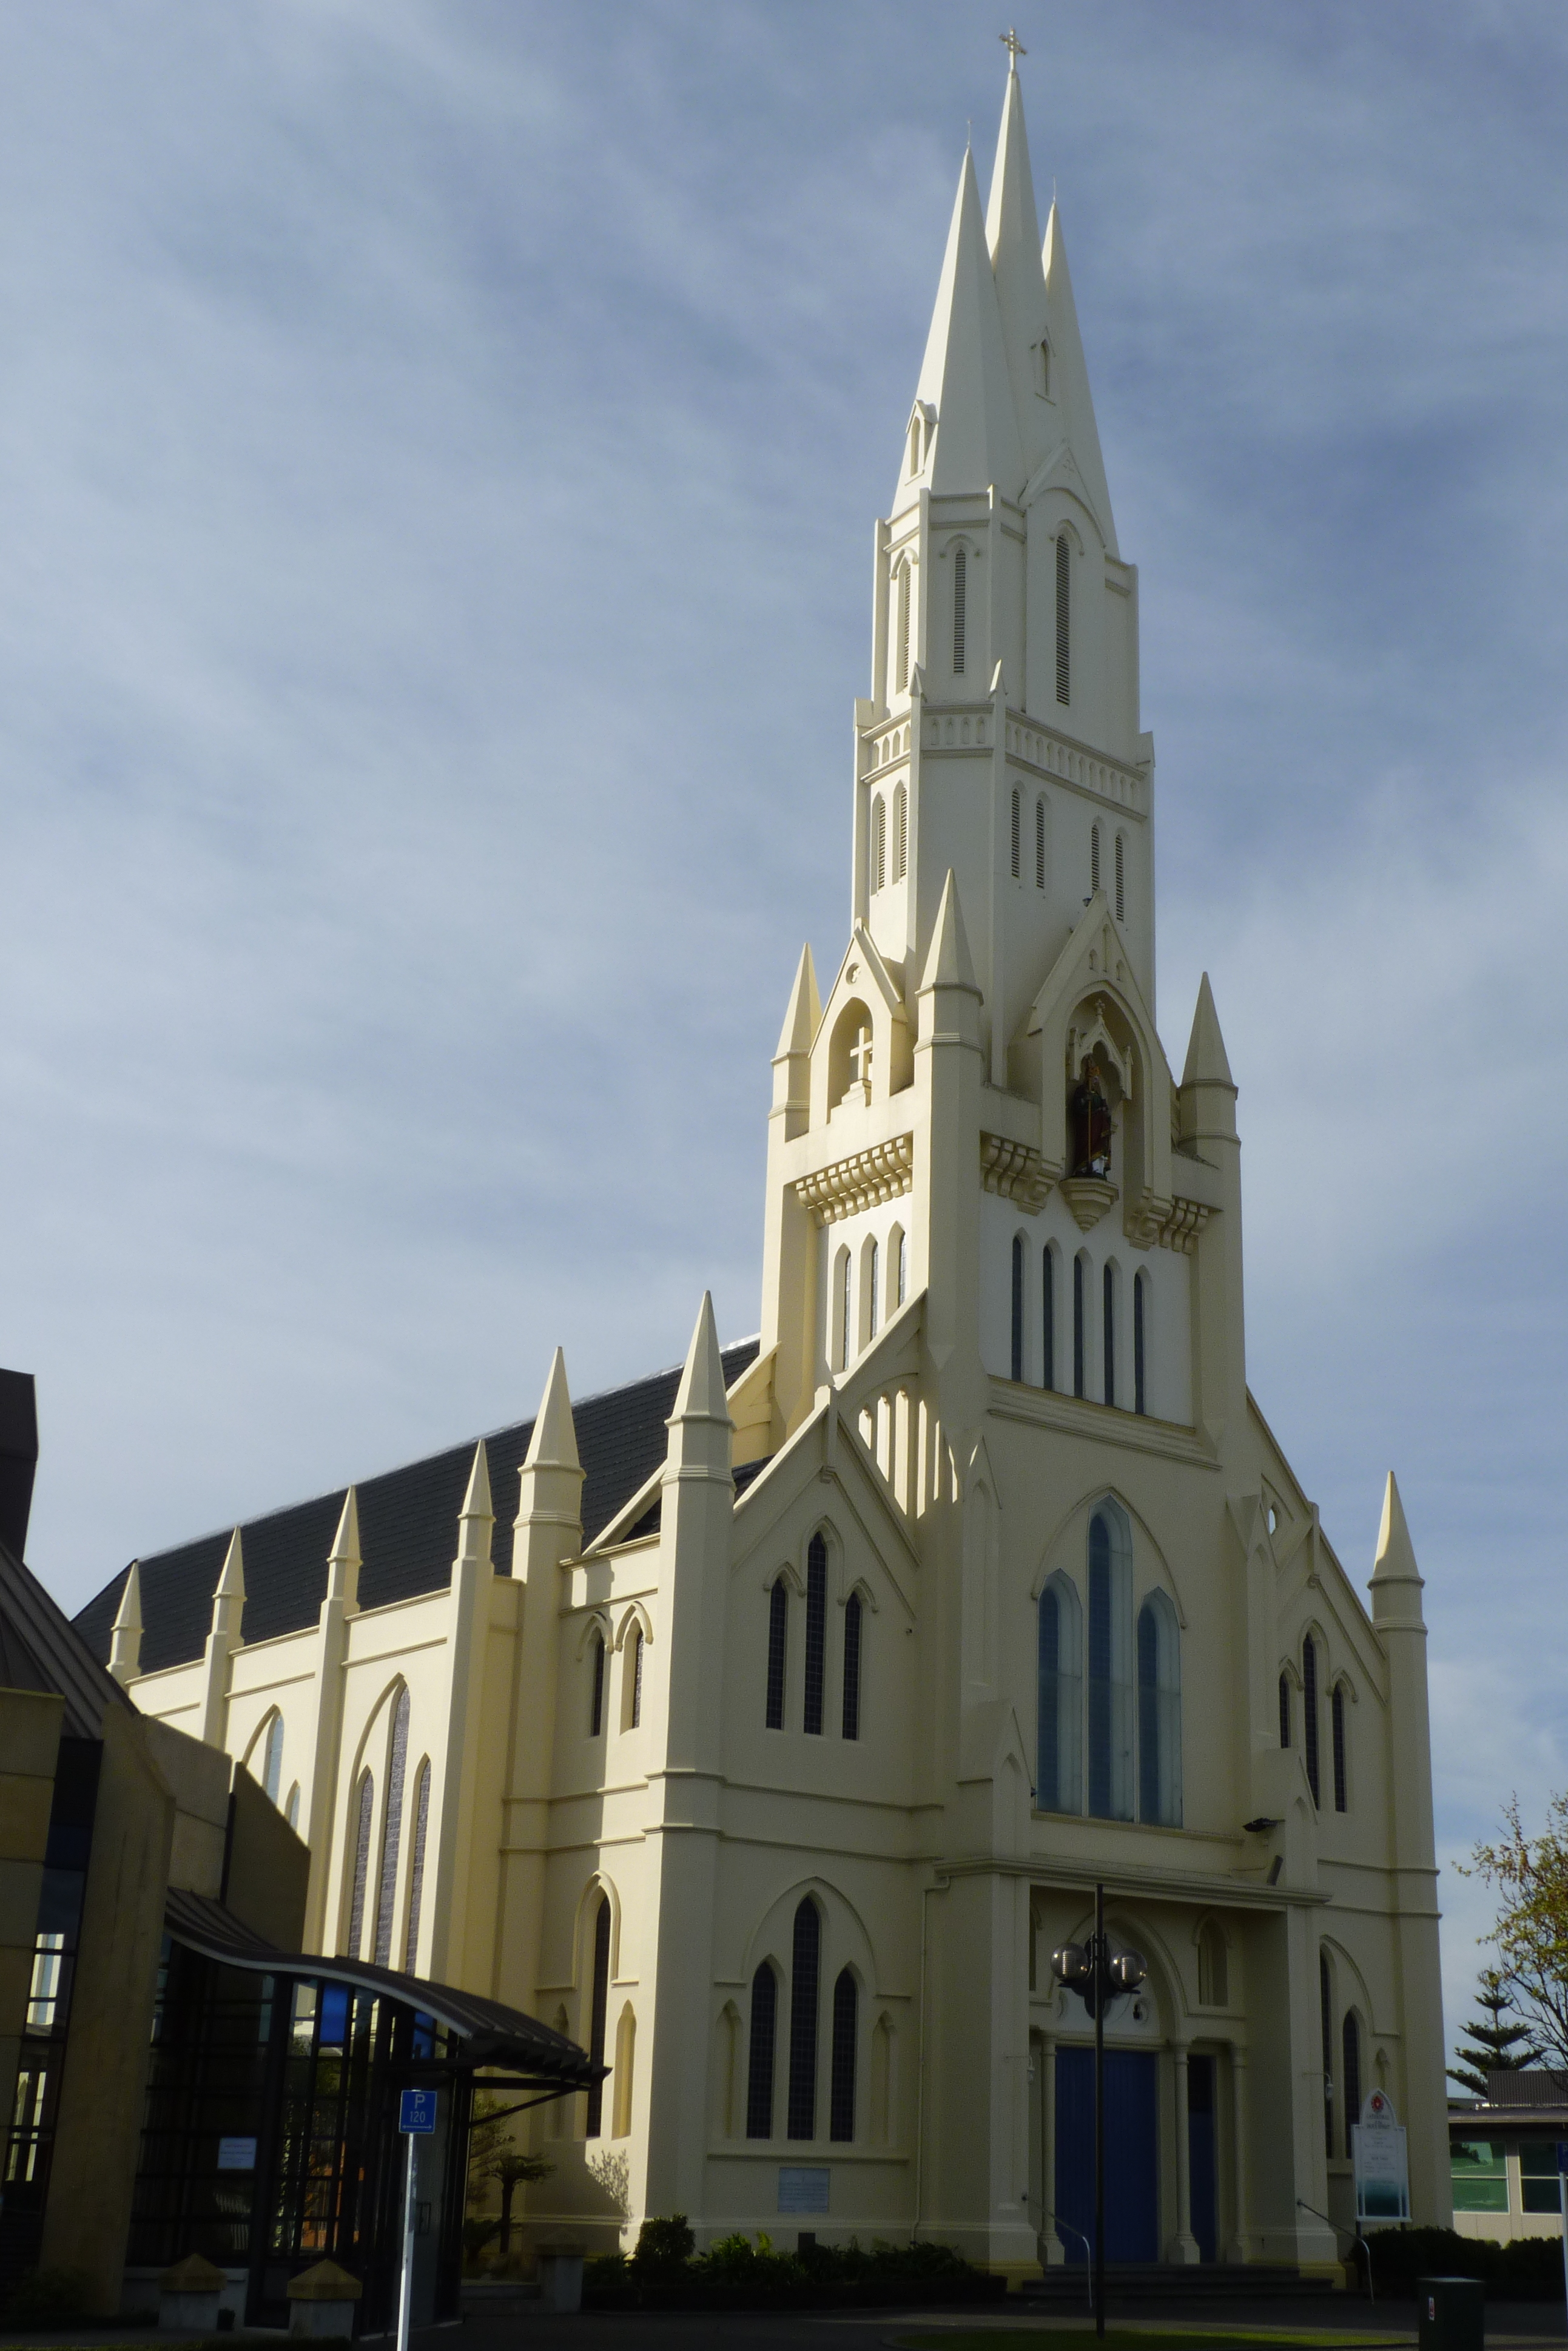 Cathedral of the Holy Spirit, Palmerston North - Wikipedia